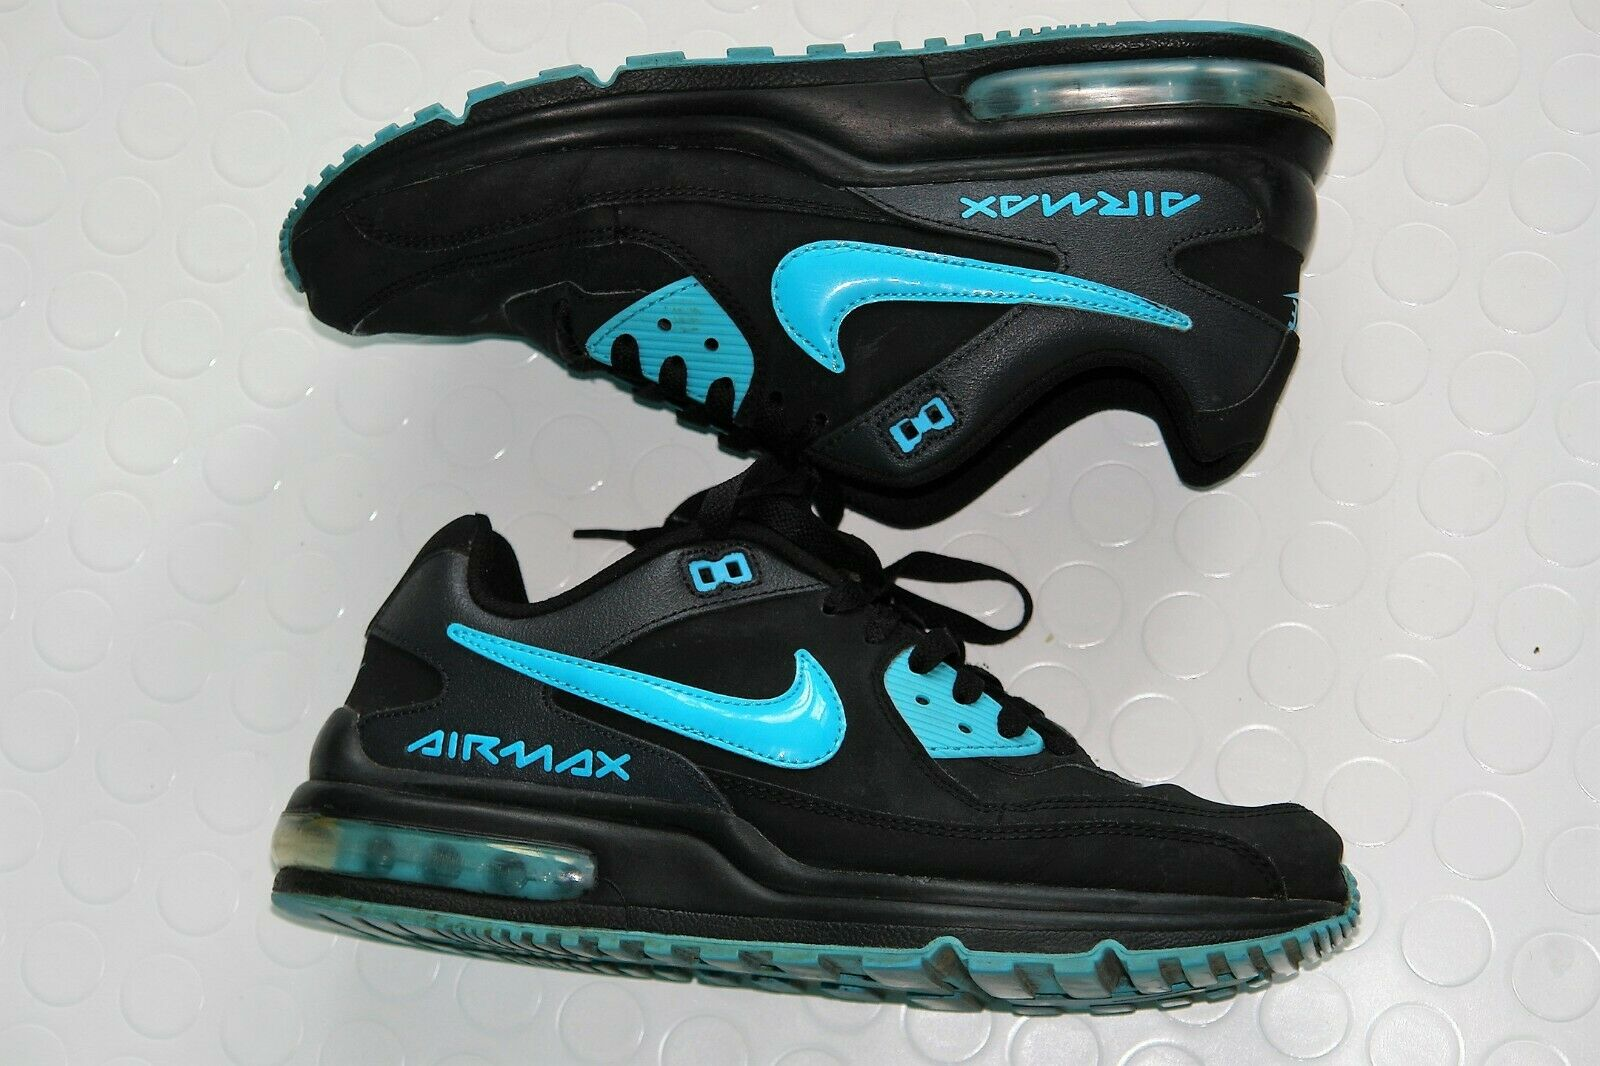 Nike Air Max Ltd 317551 049 occasion bon état. US 9,5 EUR 43